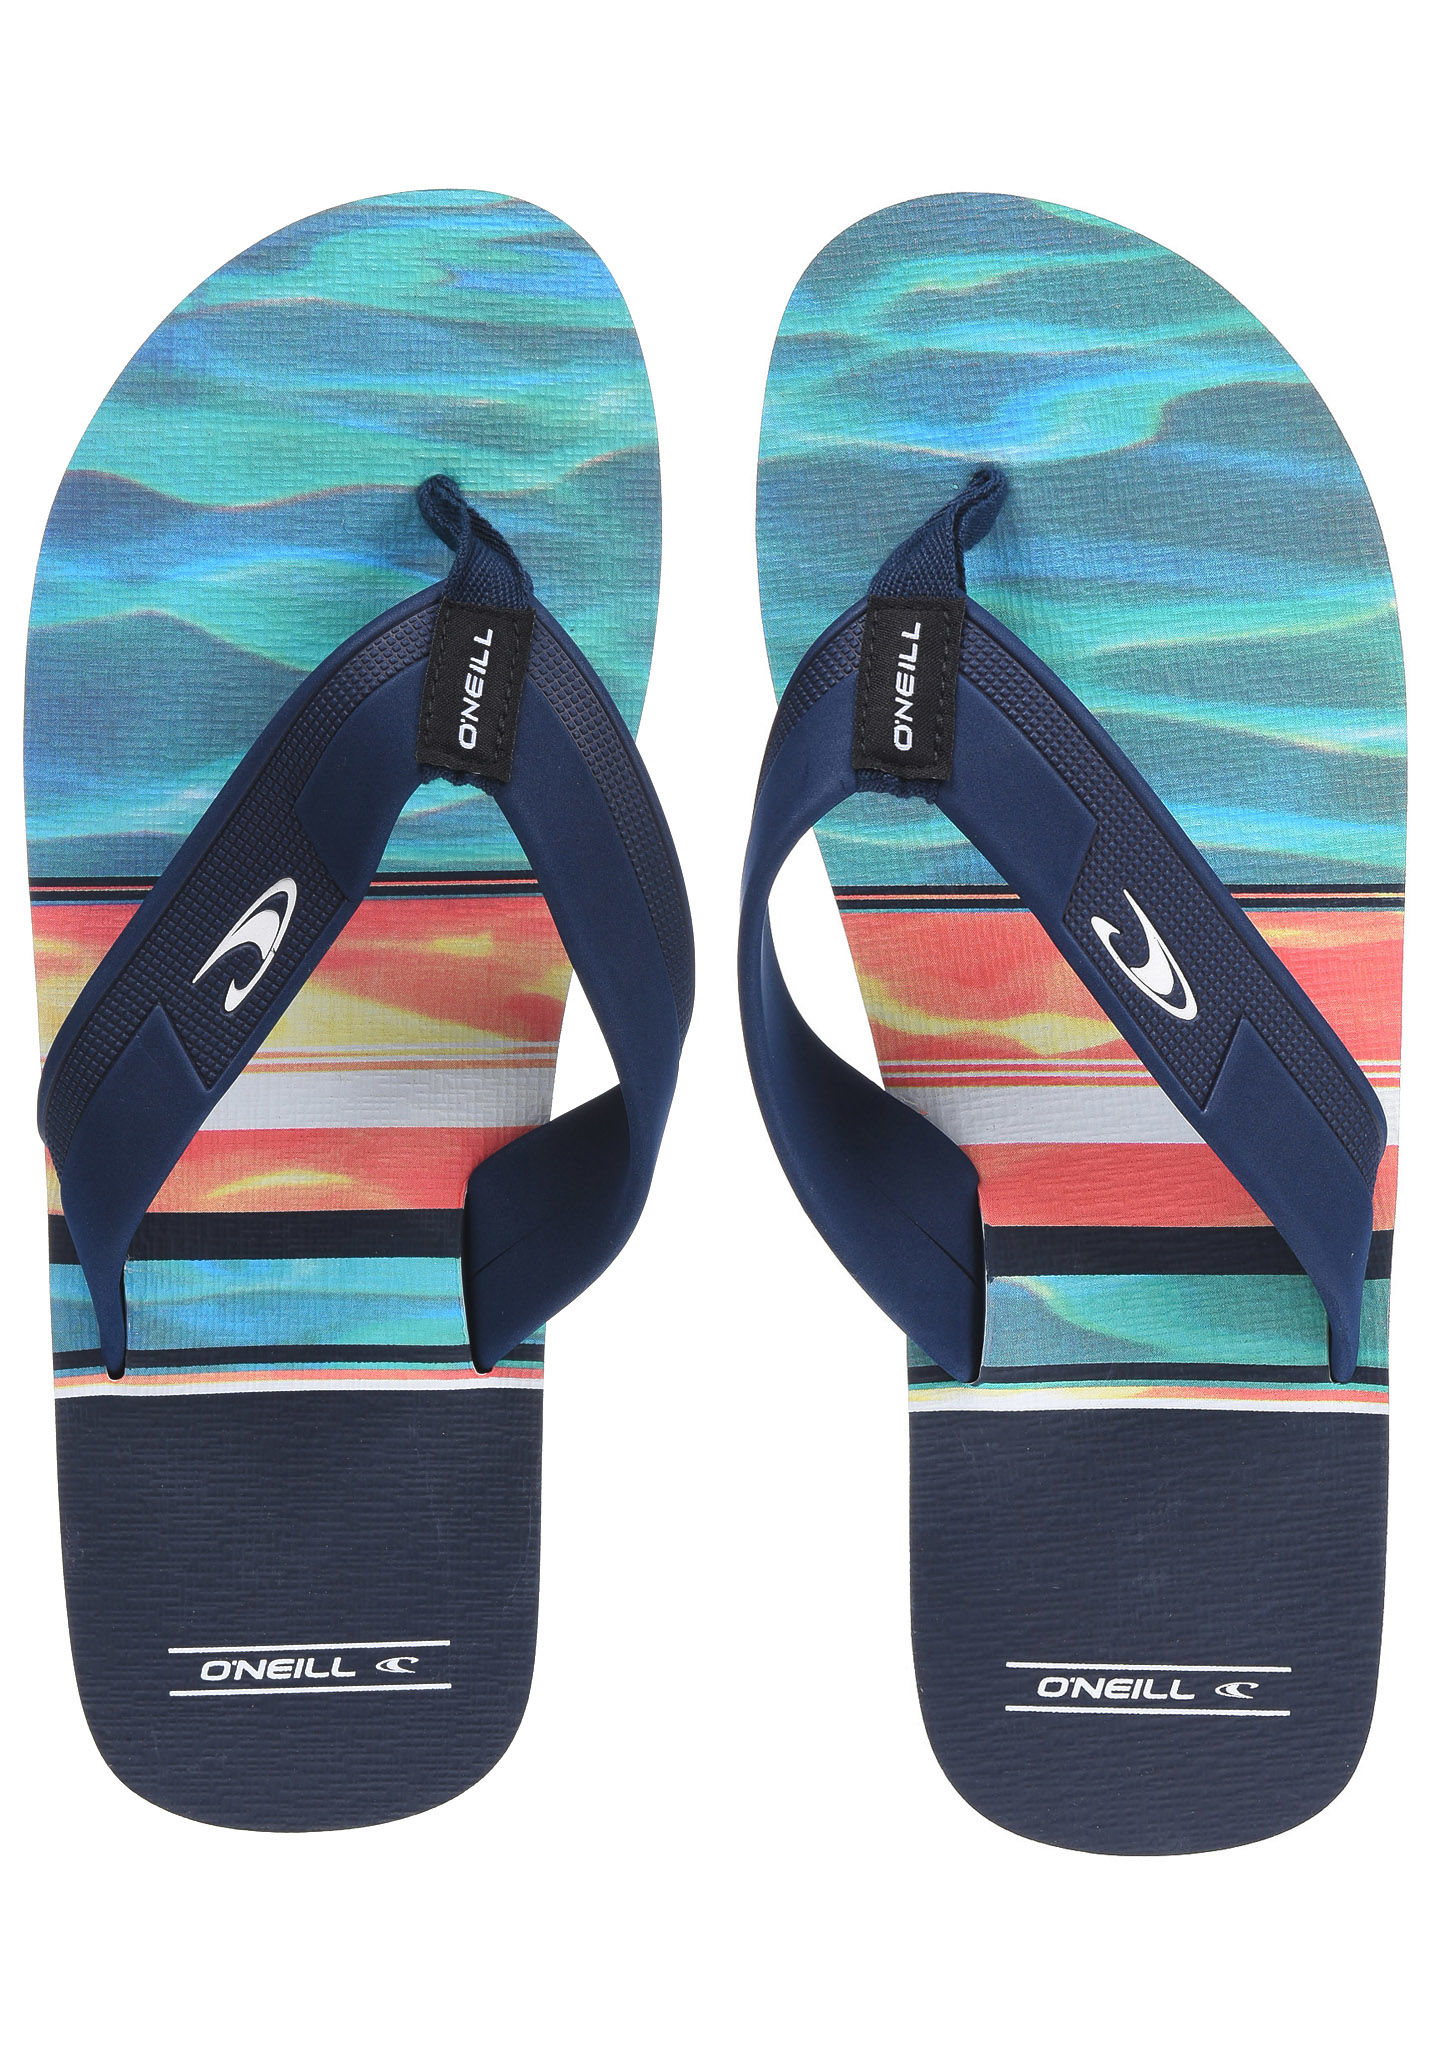 7d899739fa497 O Neill Imprint Pattern - Sandals for Men - Blue - Planet Sports